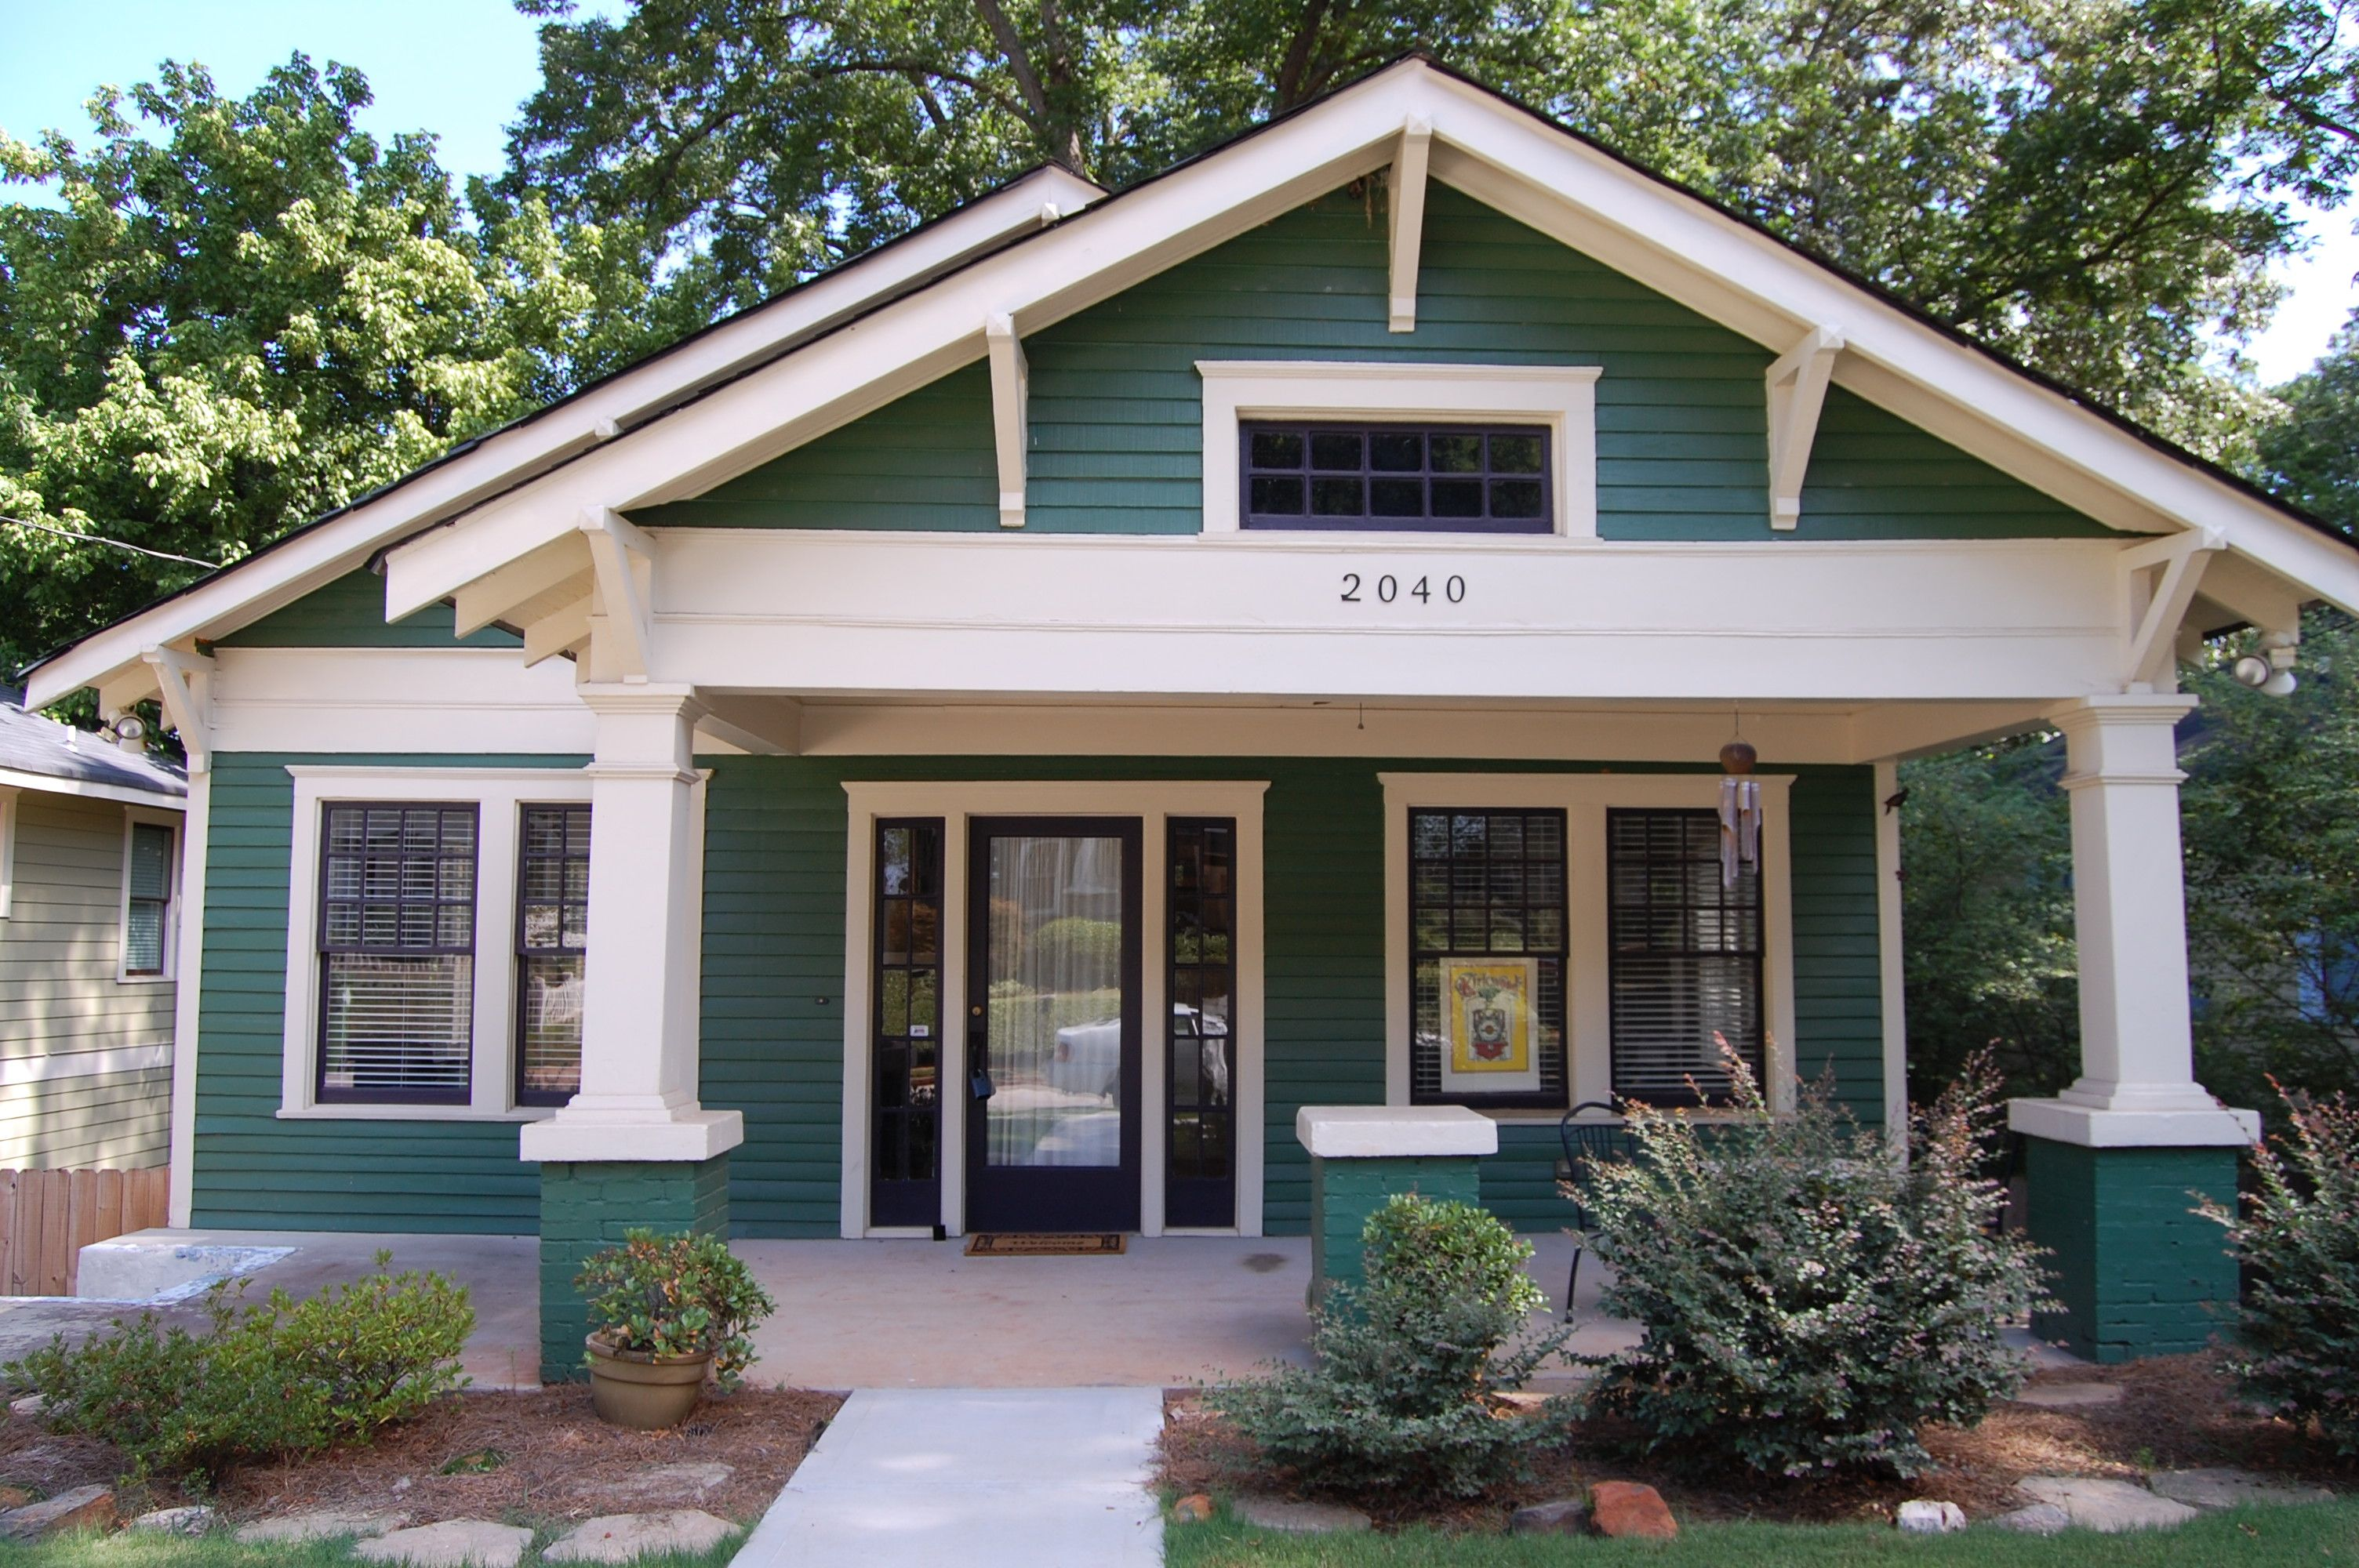 Pin By Angie Ibarra On Atlanta Bungalows Craftsman Bungalow Exterior Craftsman Bungalows Exterior House Colors